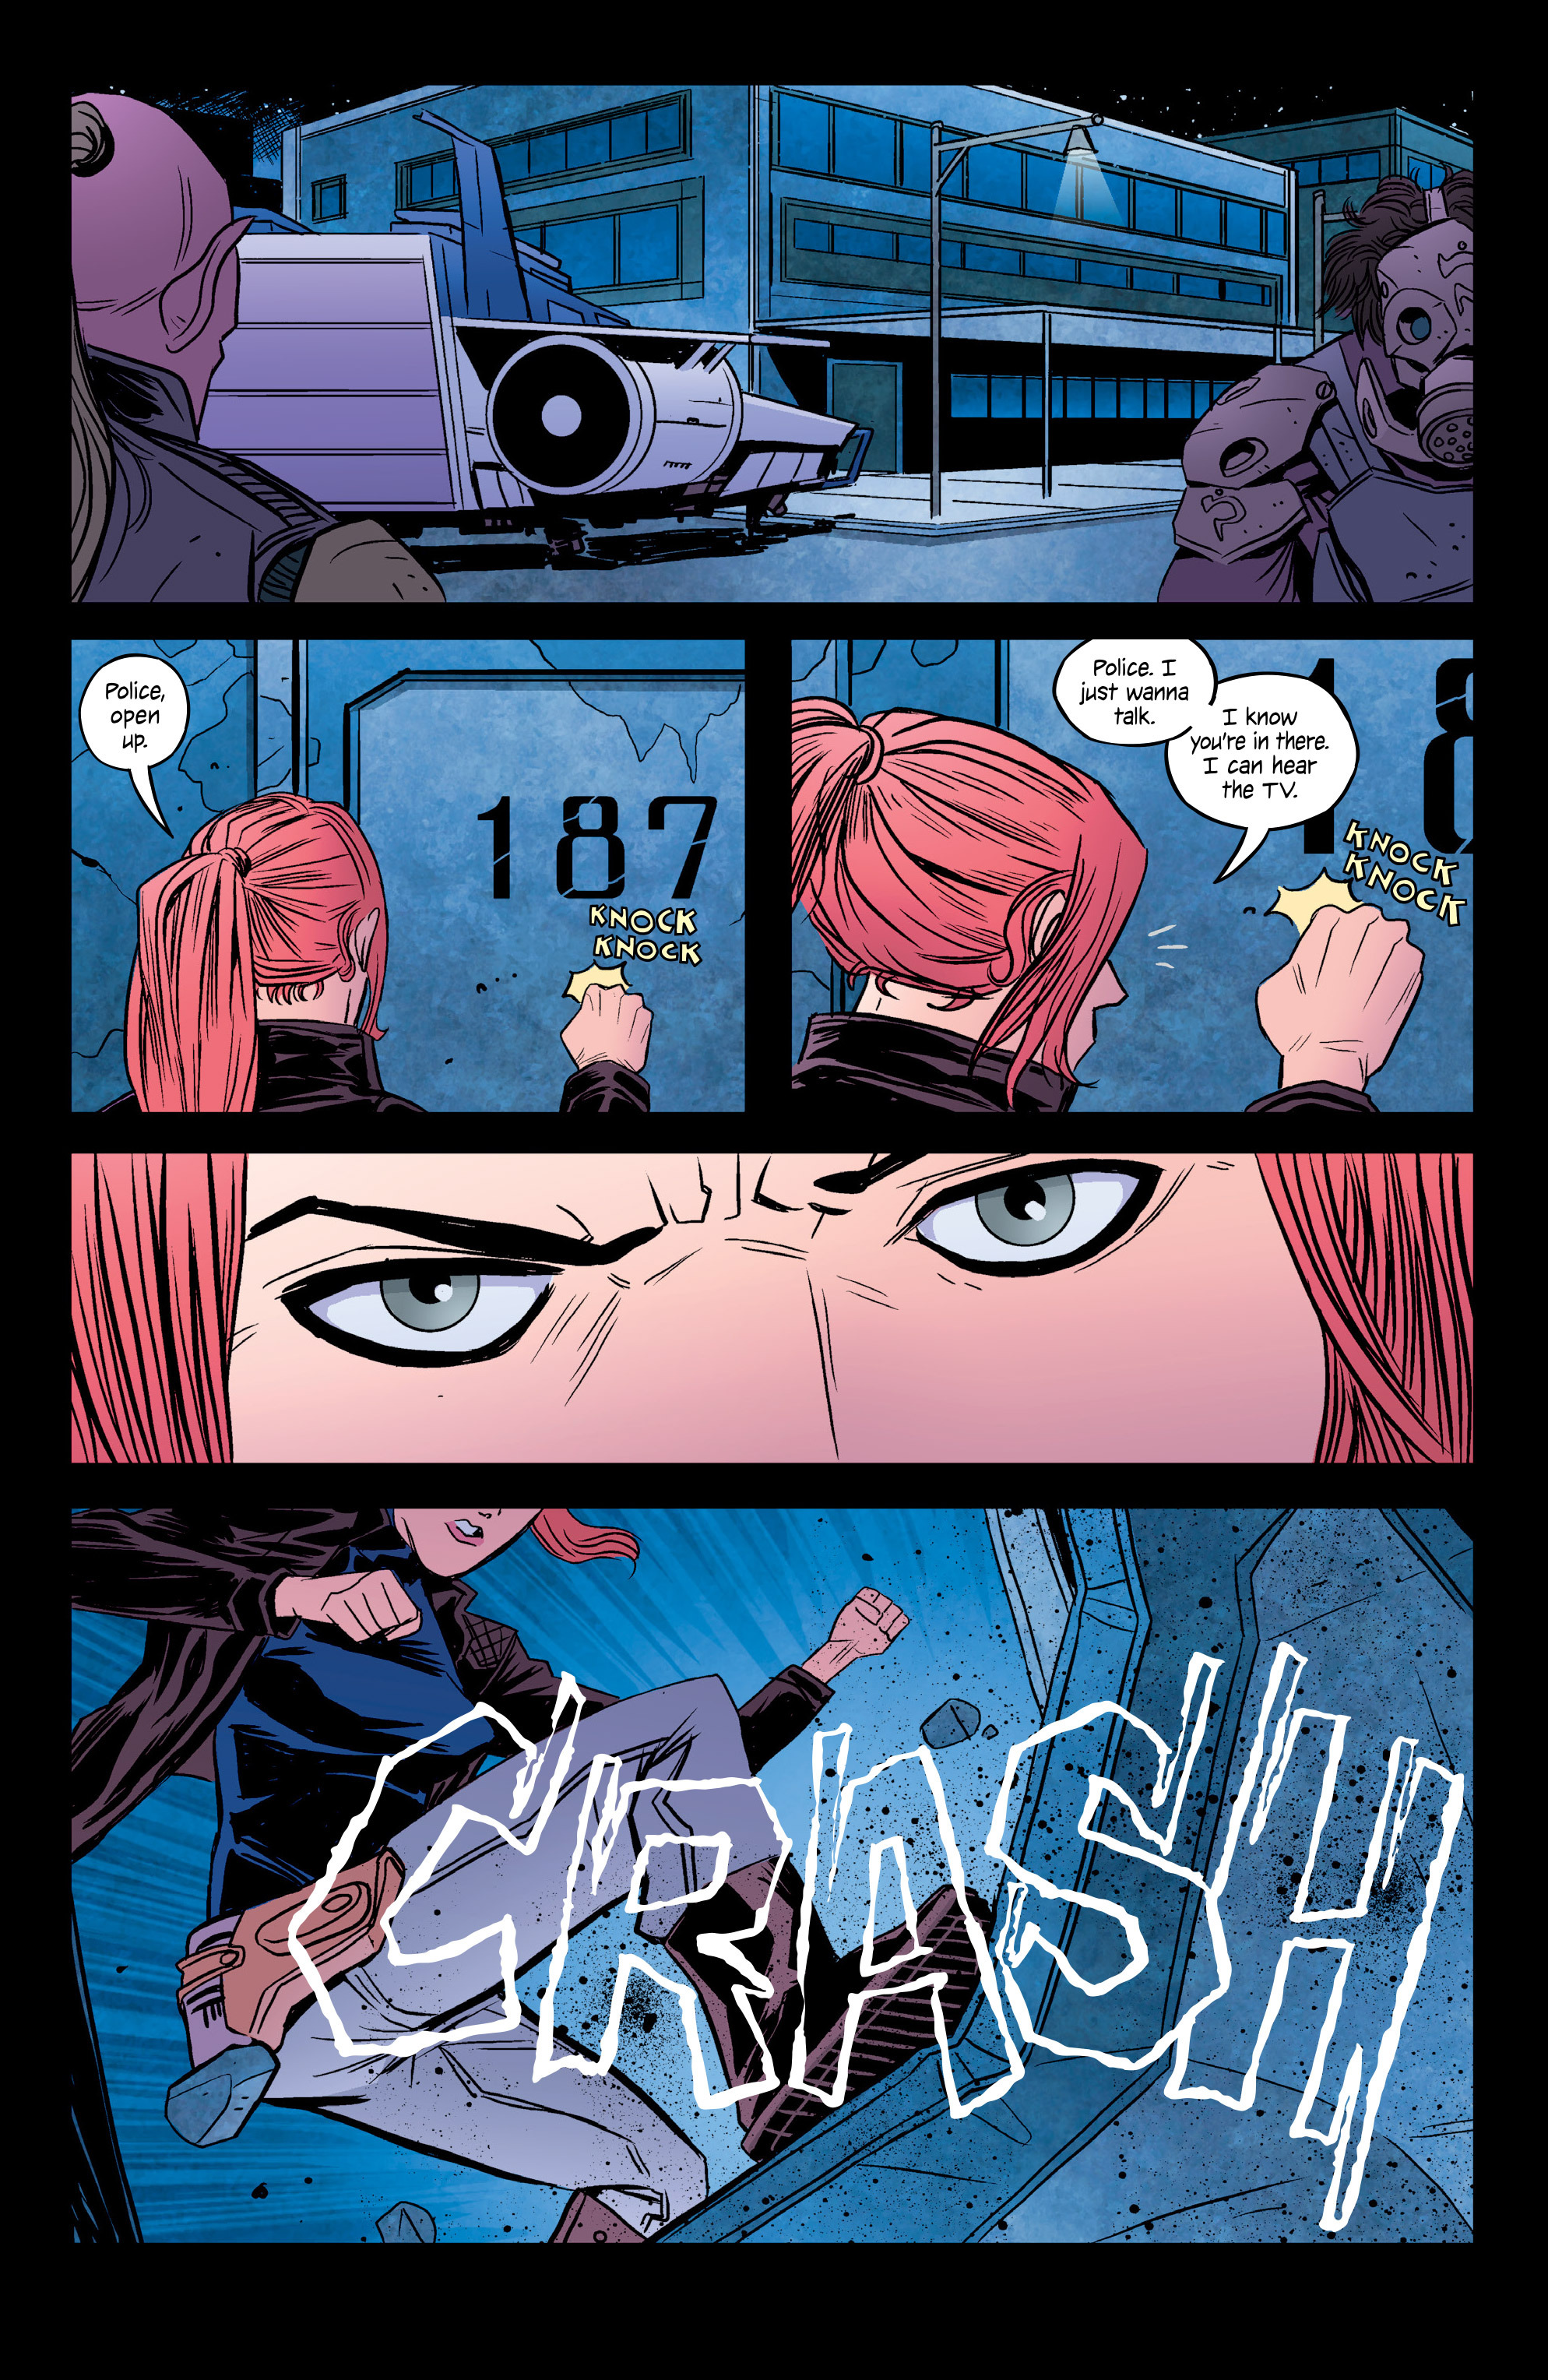 Read online Copperhead comic -  Issue #13 - 21